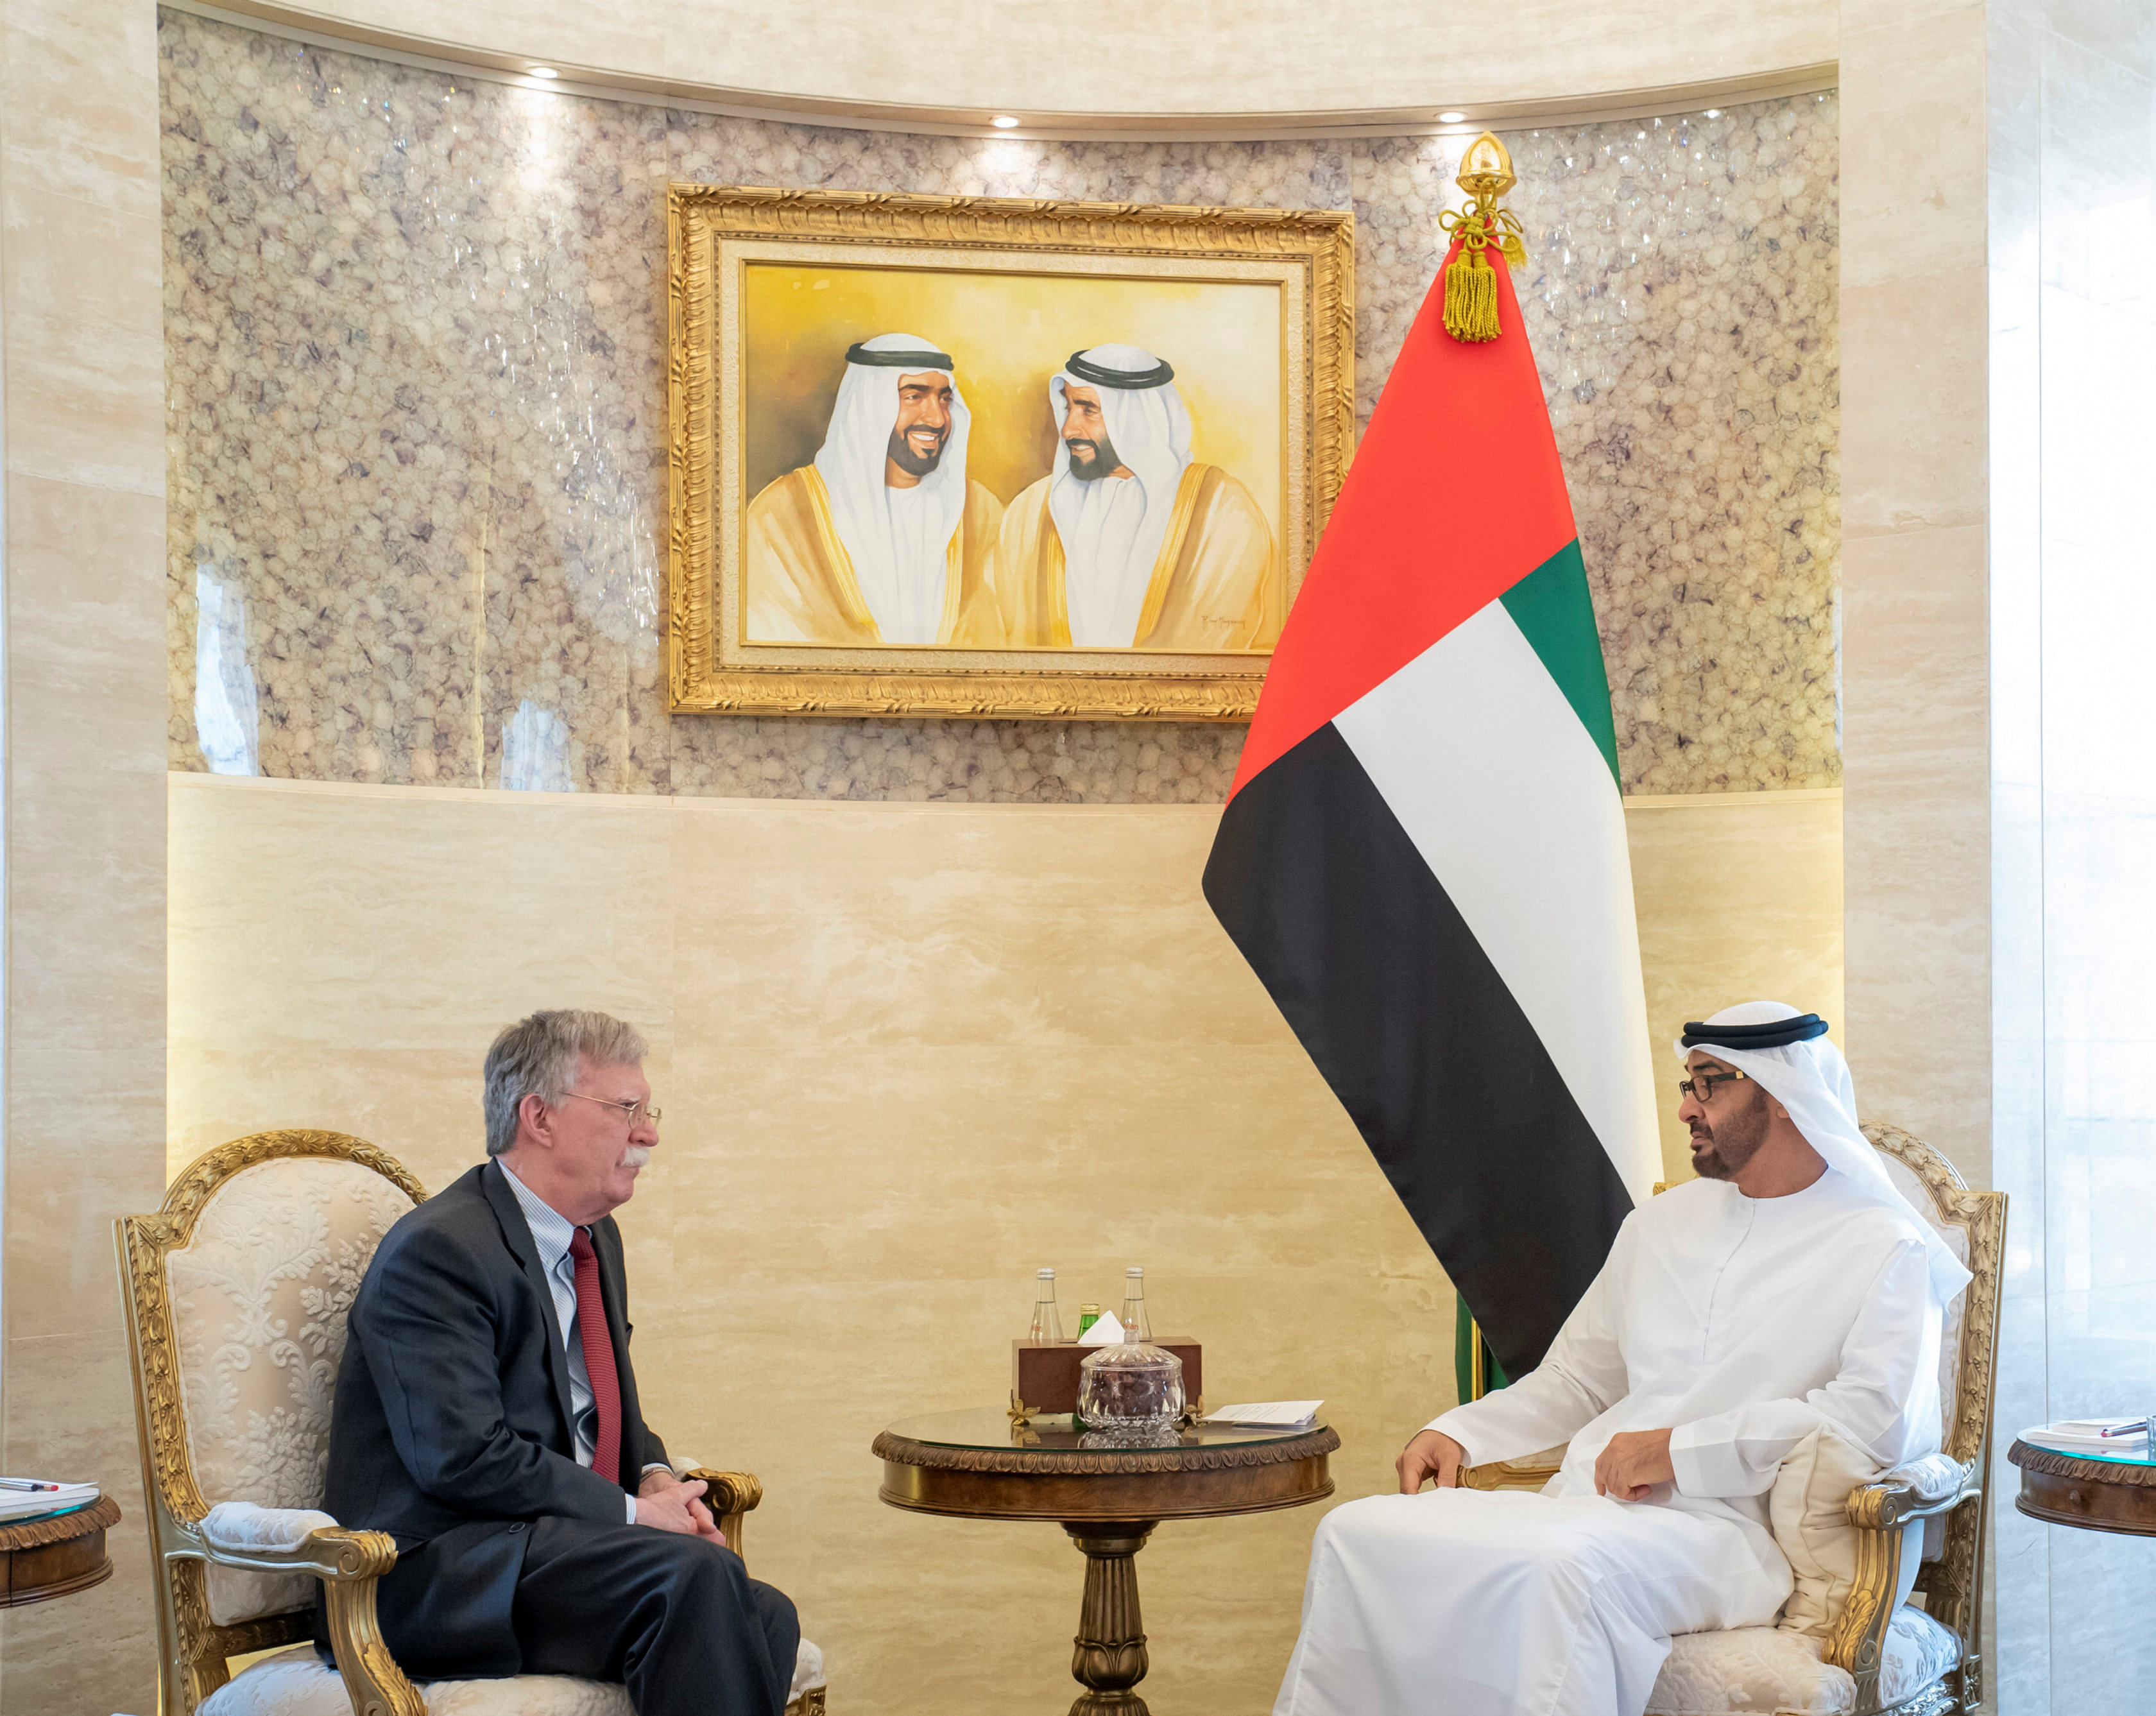 Abu Dhabi's Crown Prince Mohammed bin Zayed meets with US National Security Advisor John Bolton in Abu Dhabi (Reuters)